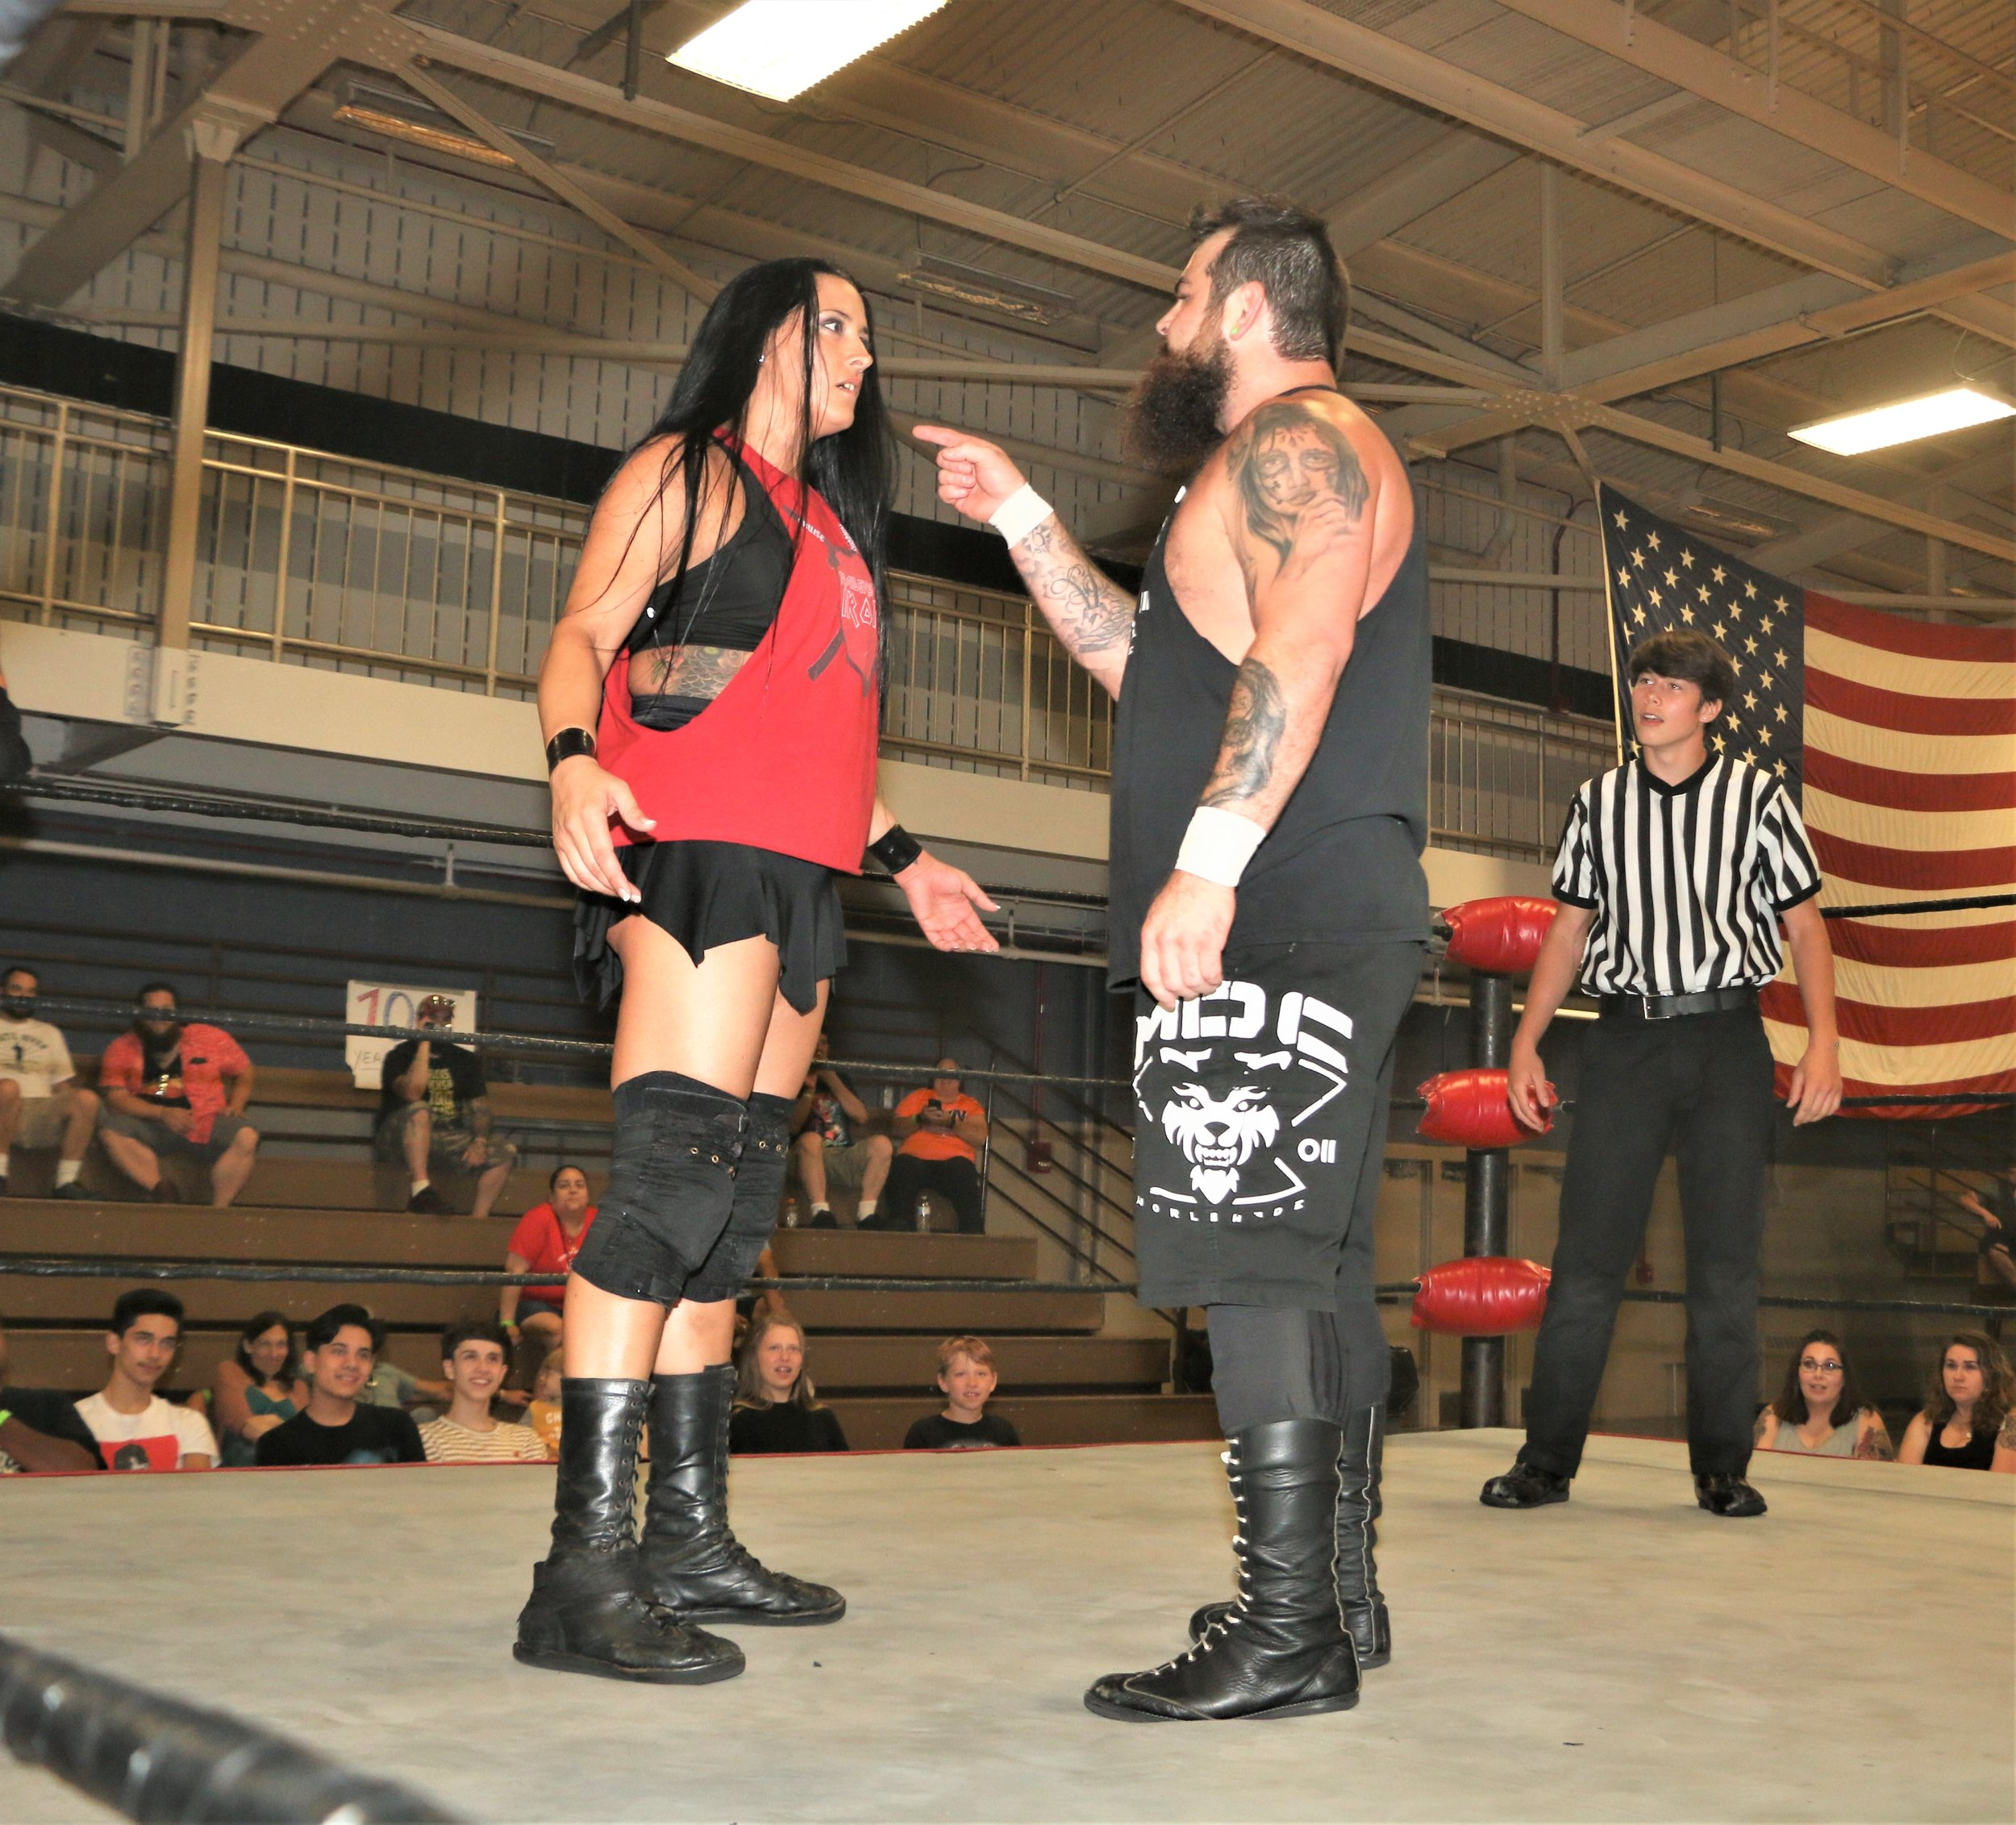 Nick Colucci taunts Melanie Cruise during the 10-man elimination tag-team match.